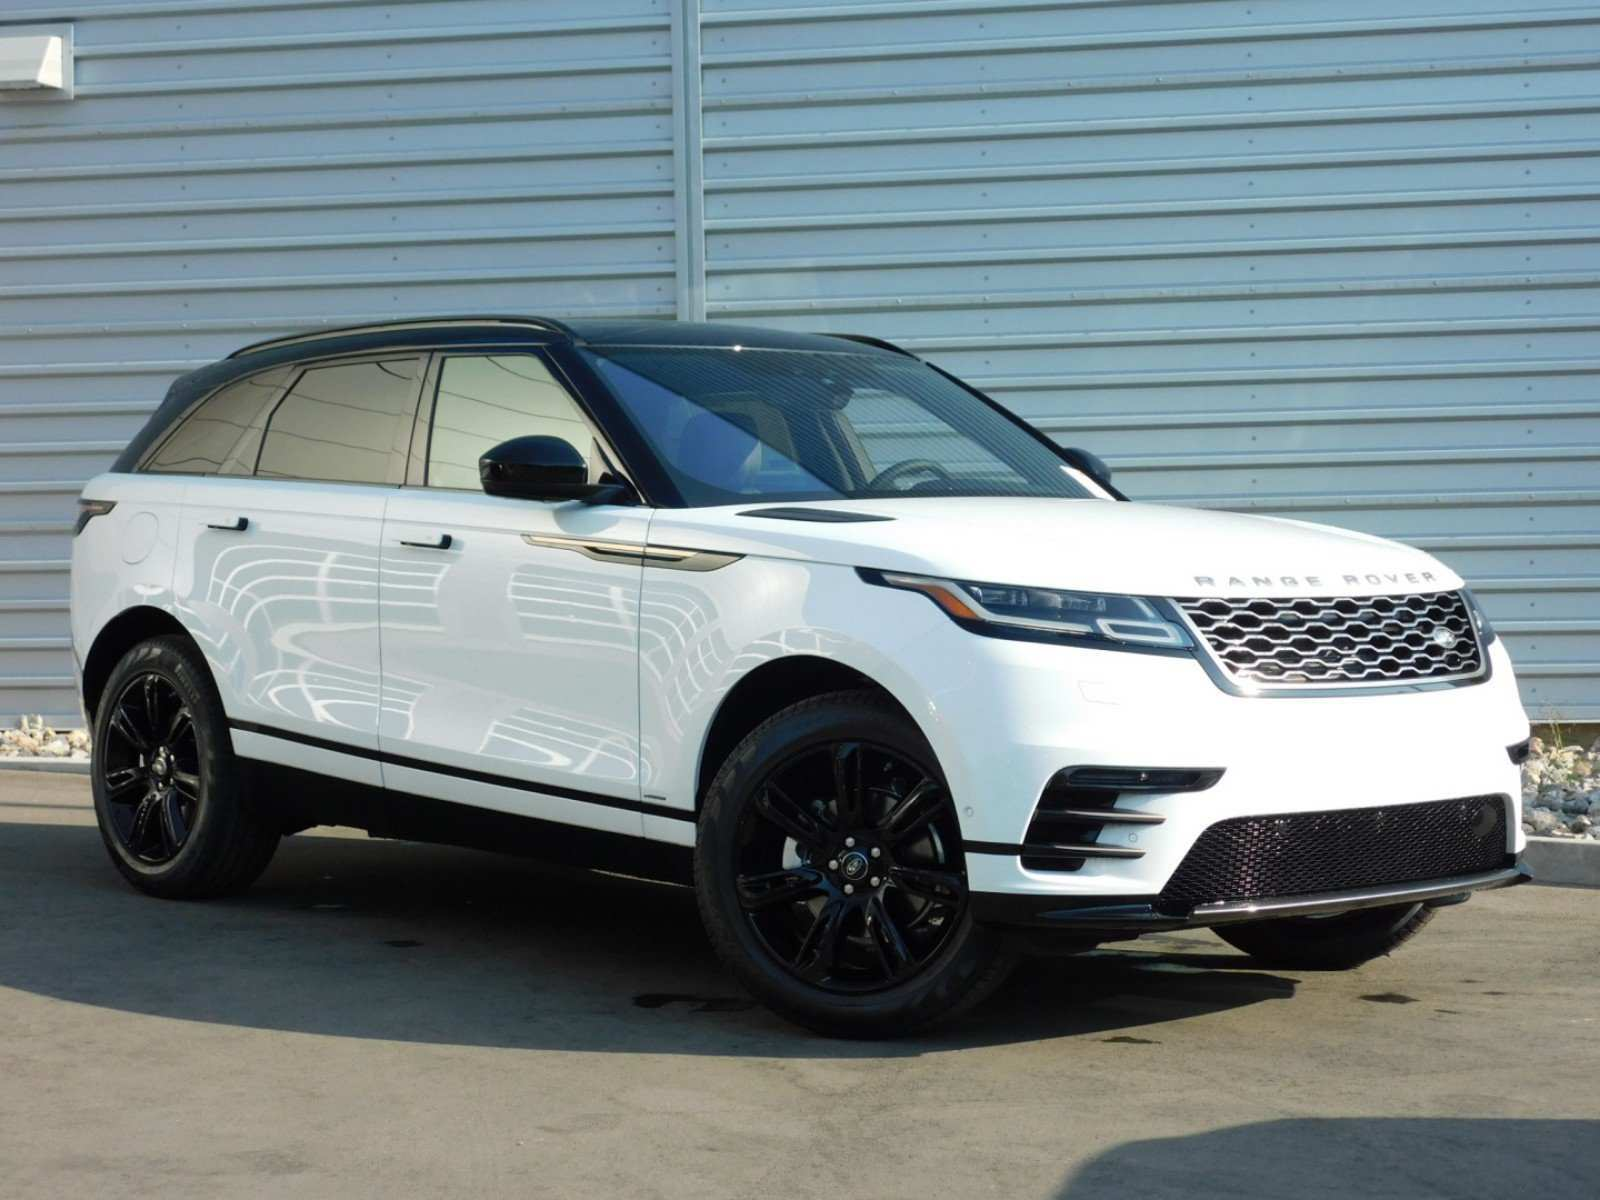 61 Concept of New Land Rover Range Rover 2019 New Review by New Land Rover Range Rover 2019